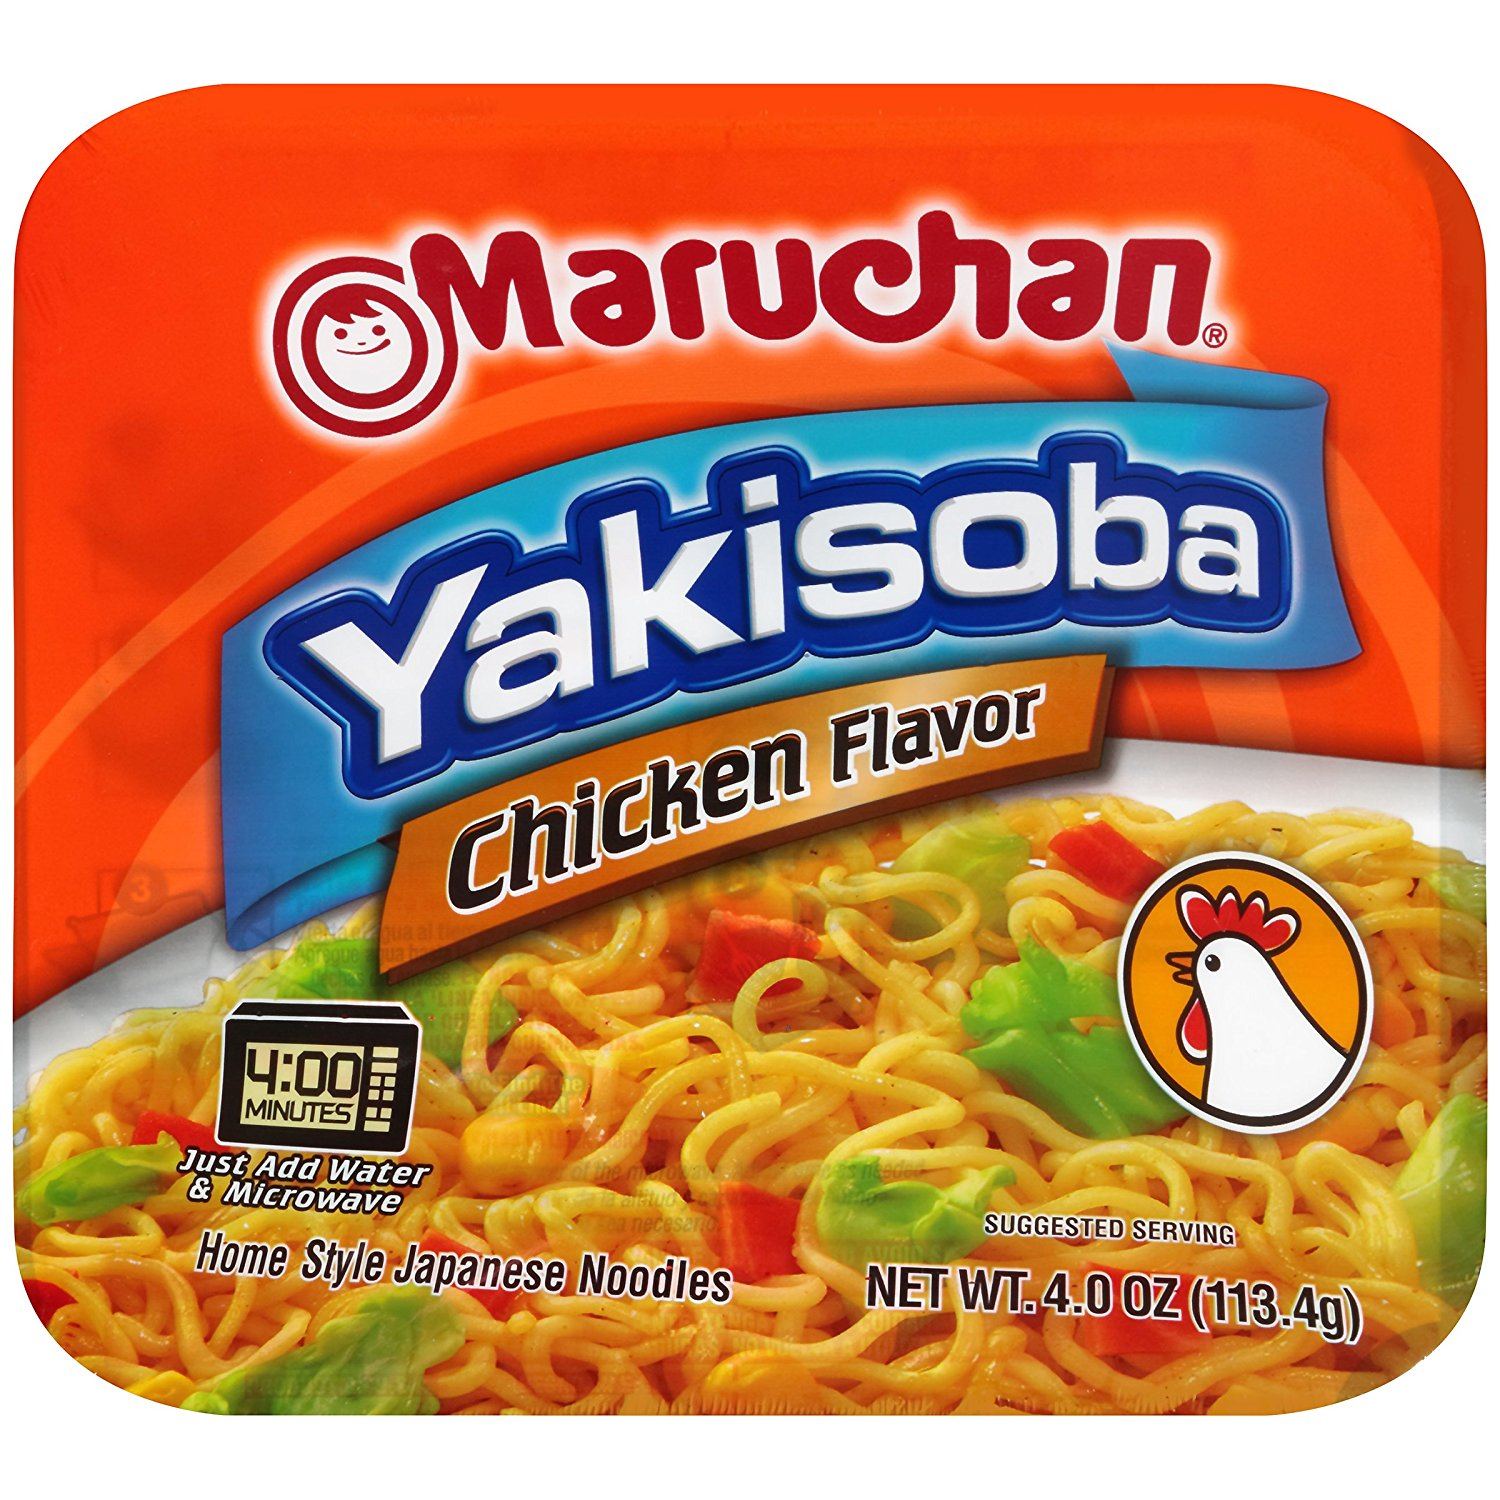 Maruchan Yakisoba Noodles for $0.36 at Albertsons